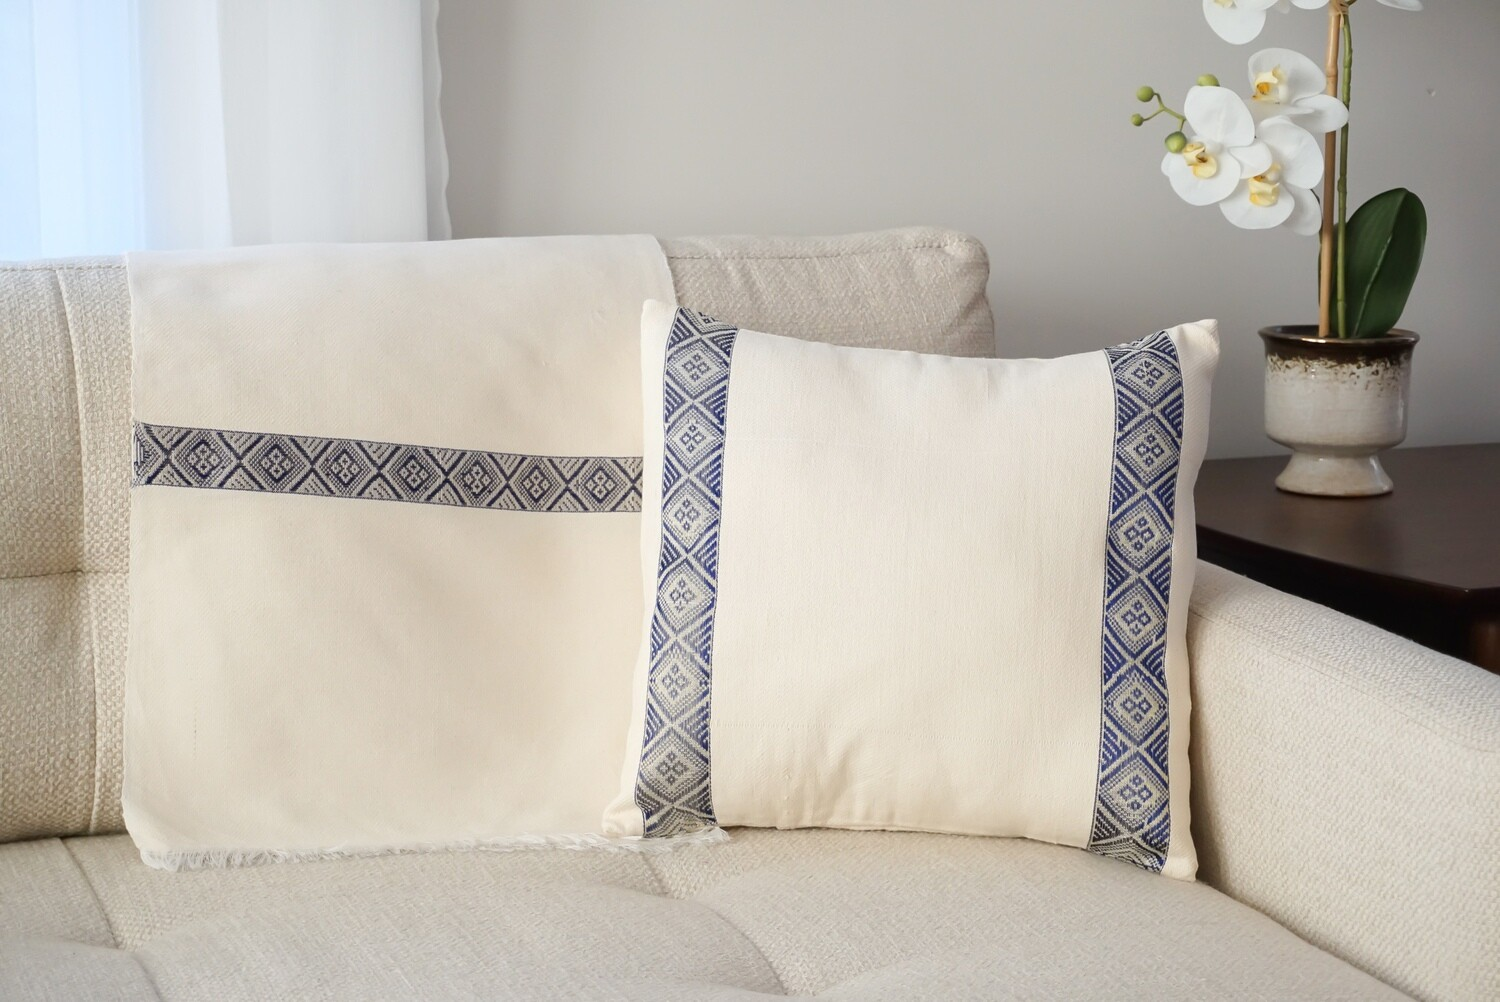 Accent Sofa Throw Pillow| Nave Blue On Cream| Handwoven| Blend Of Cotton Acrylic